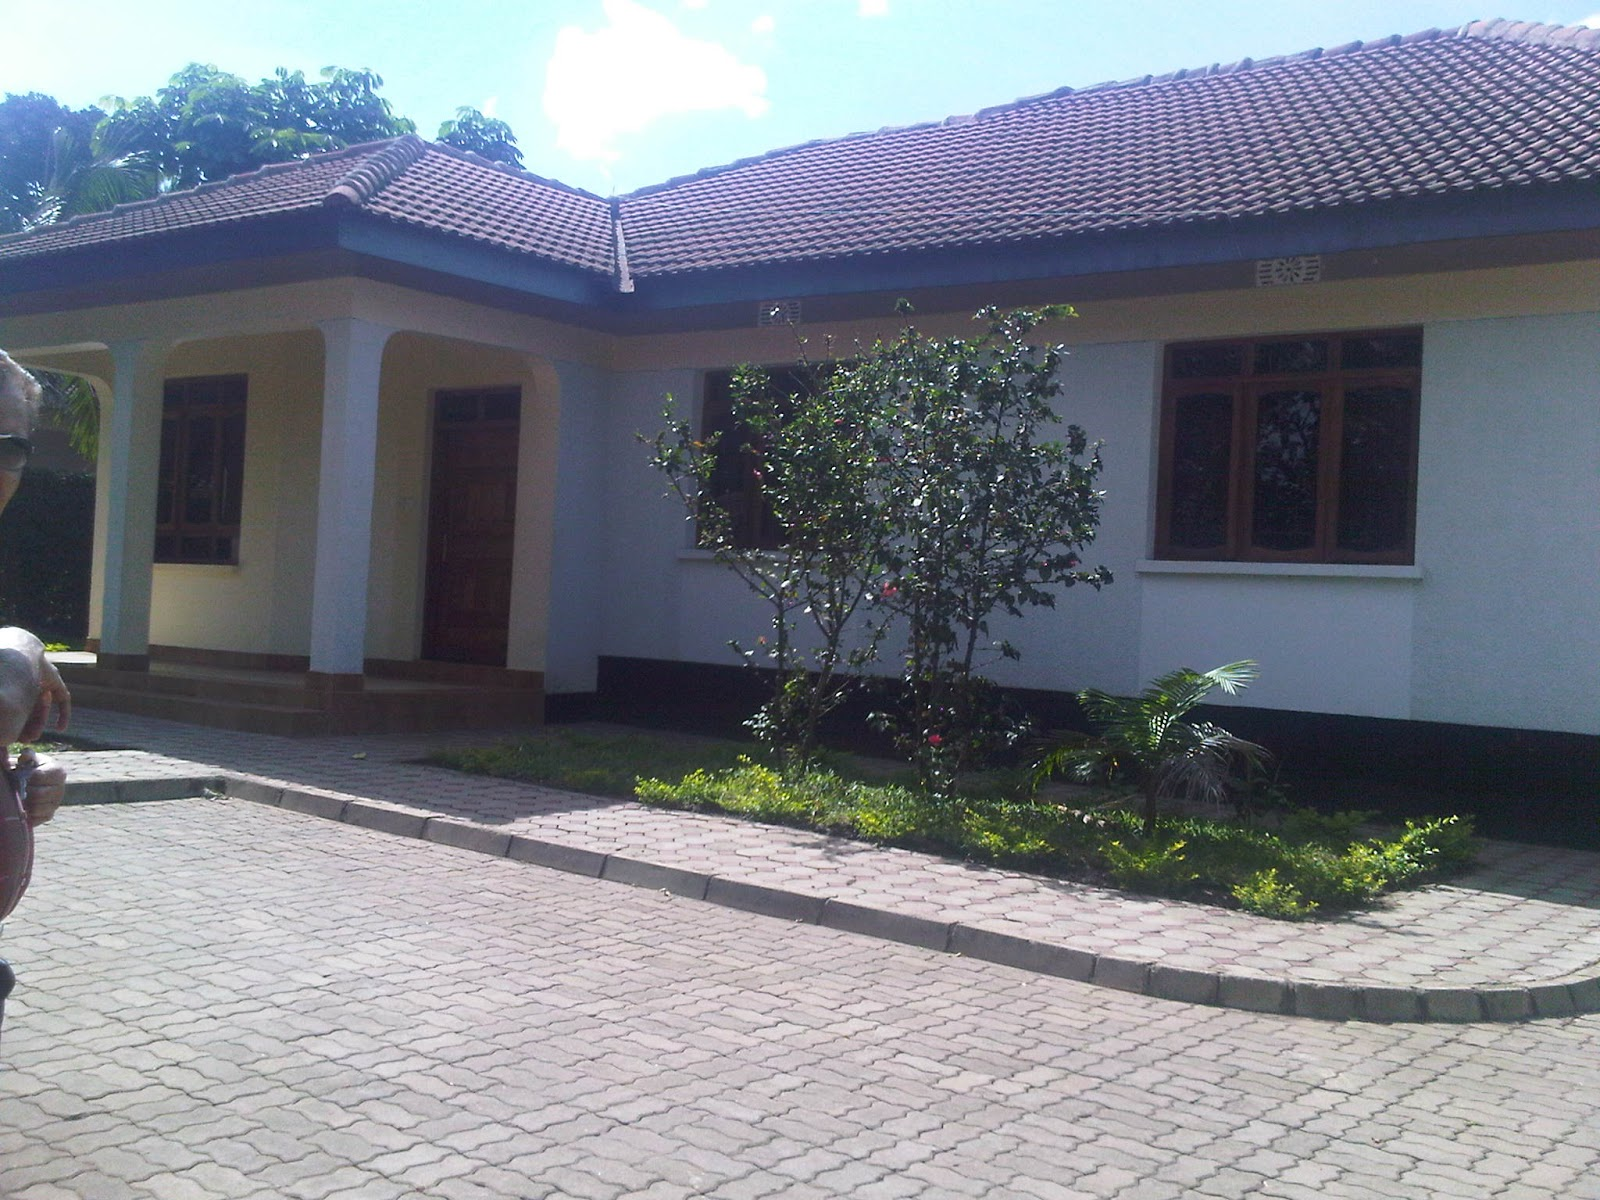 Rent house in tanzania arusha rent houses houses for sale for Decoration za nyumba